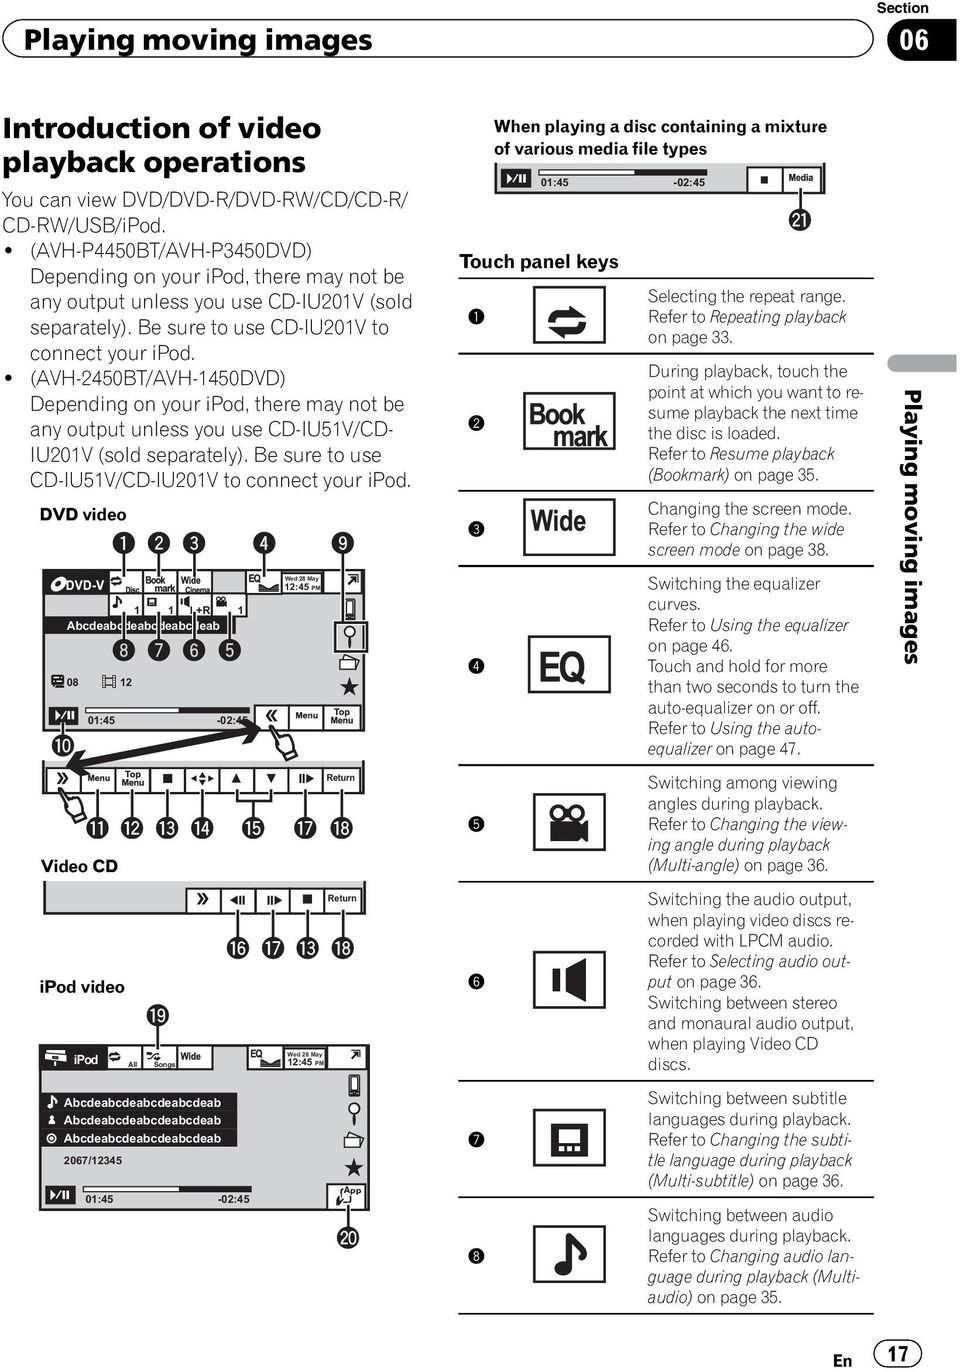 page_17?resize\\=665%2C950 wiring diagram for pioneer avh p2400bt pioneer wiring harness pioneer avh-p2400bt wiring harness at crackthecode.co